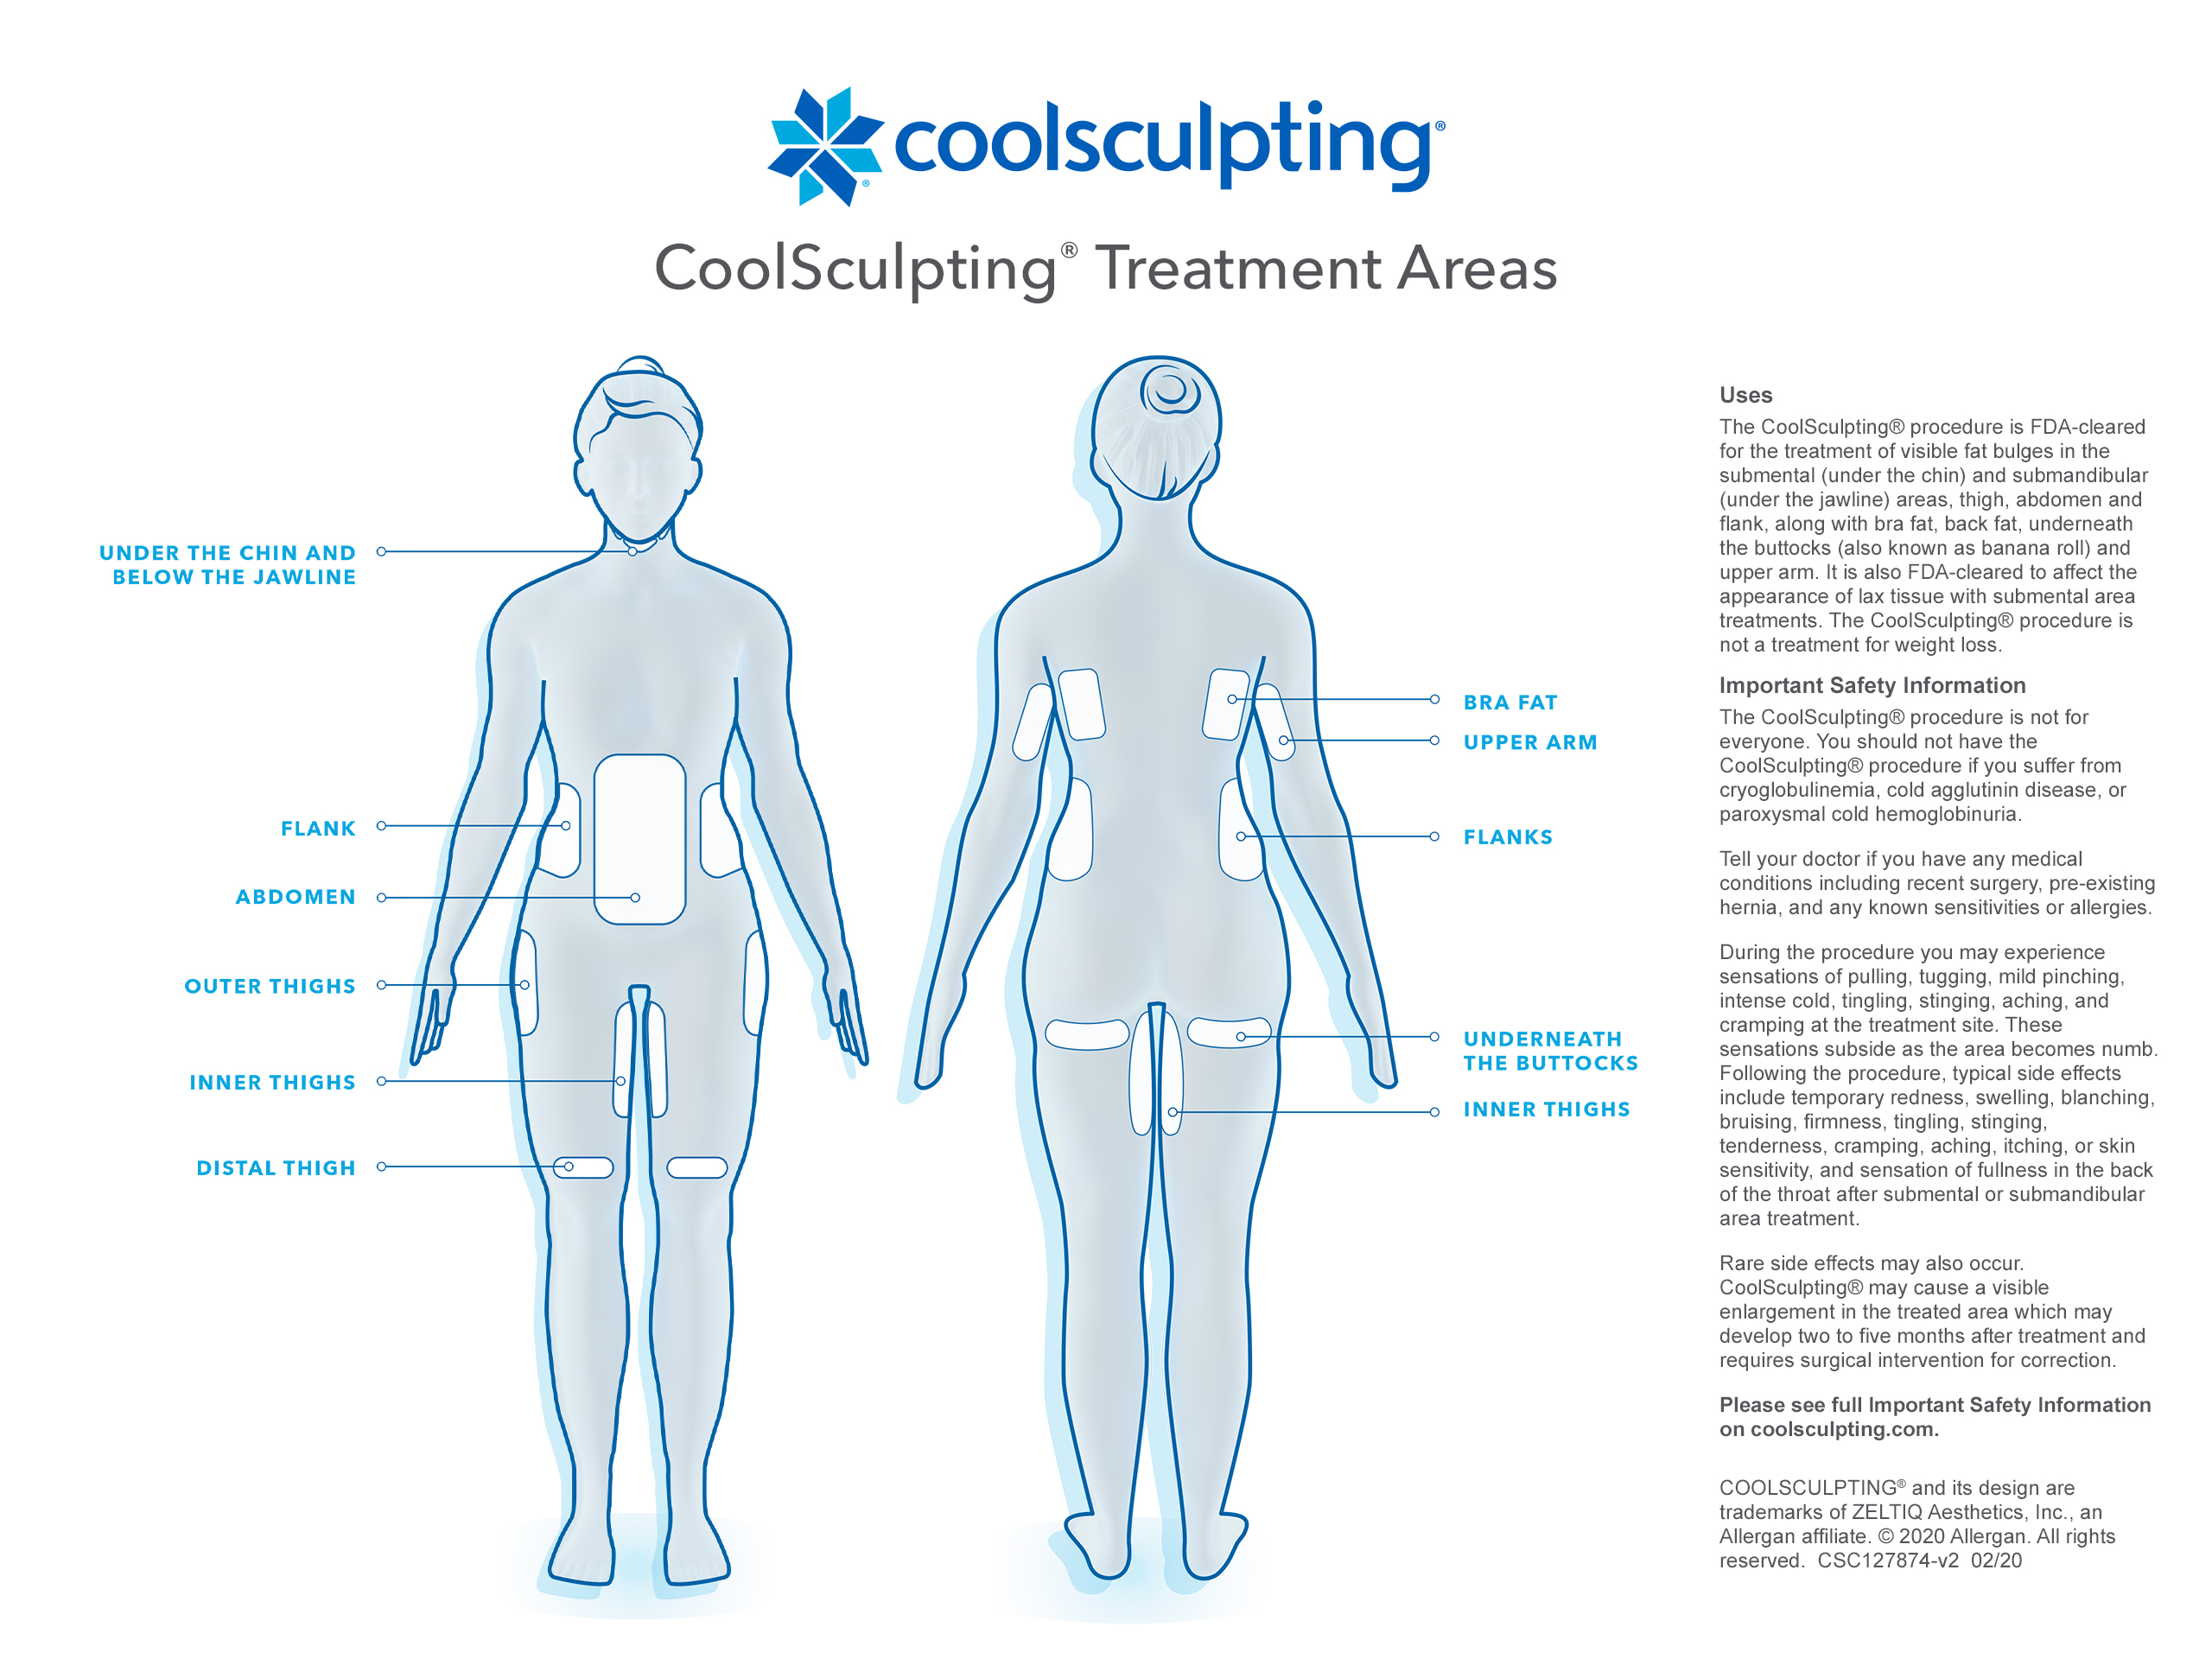 coolsculpting take yourself further